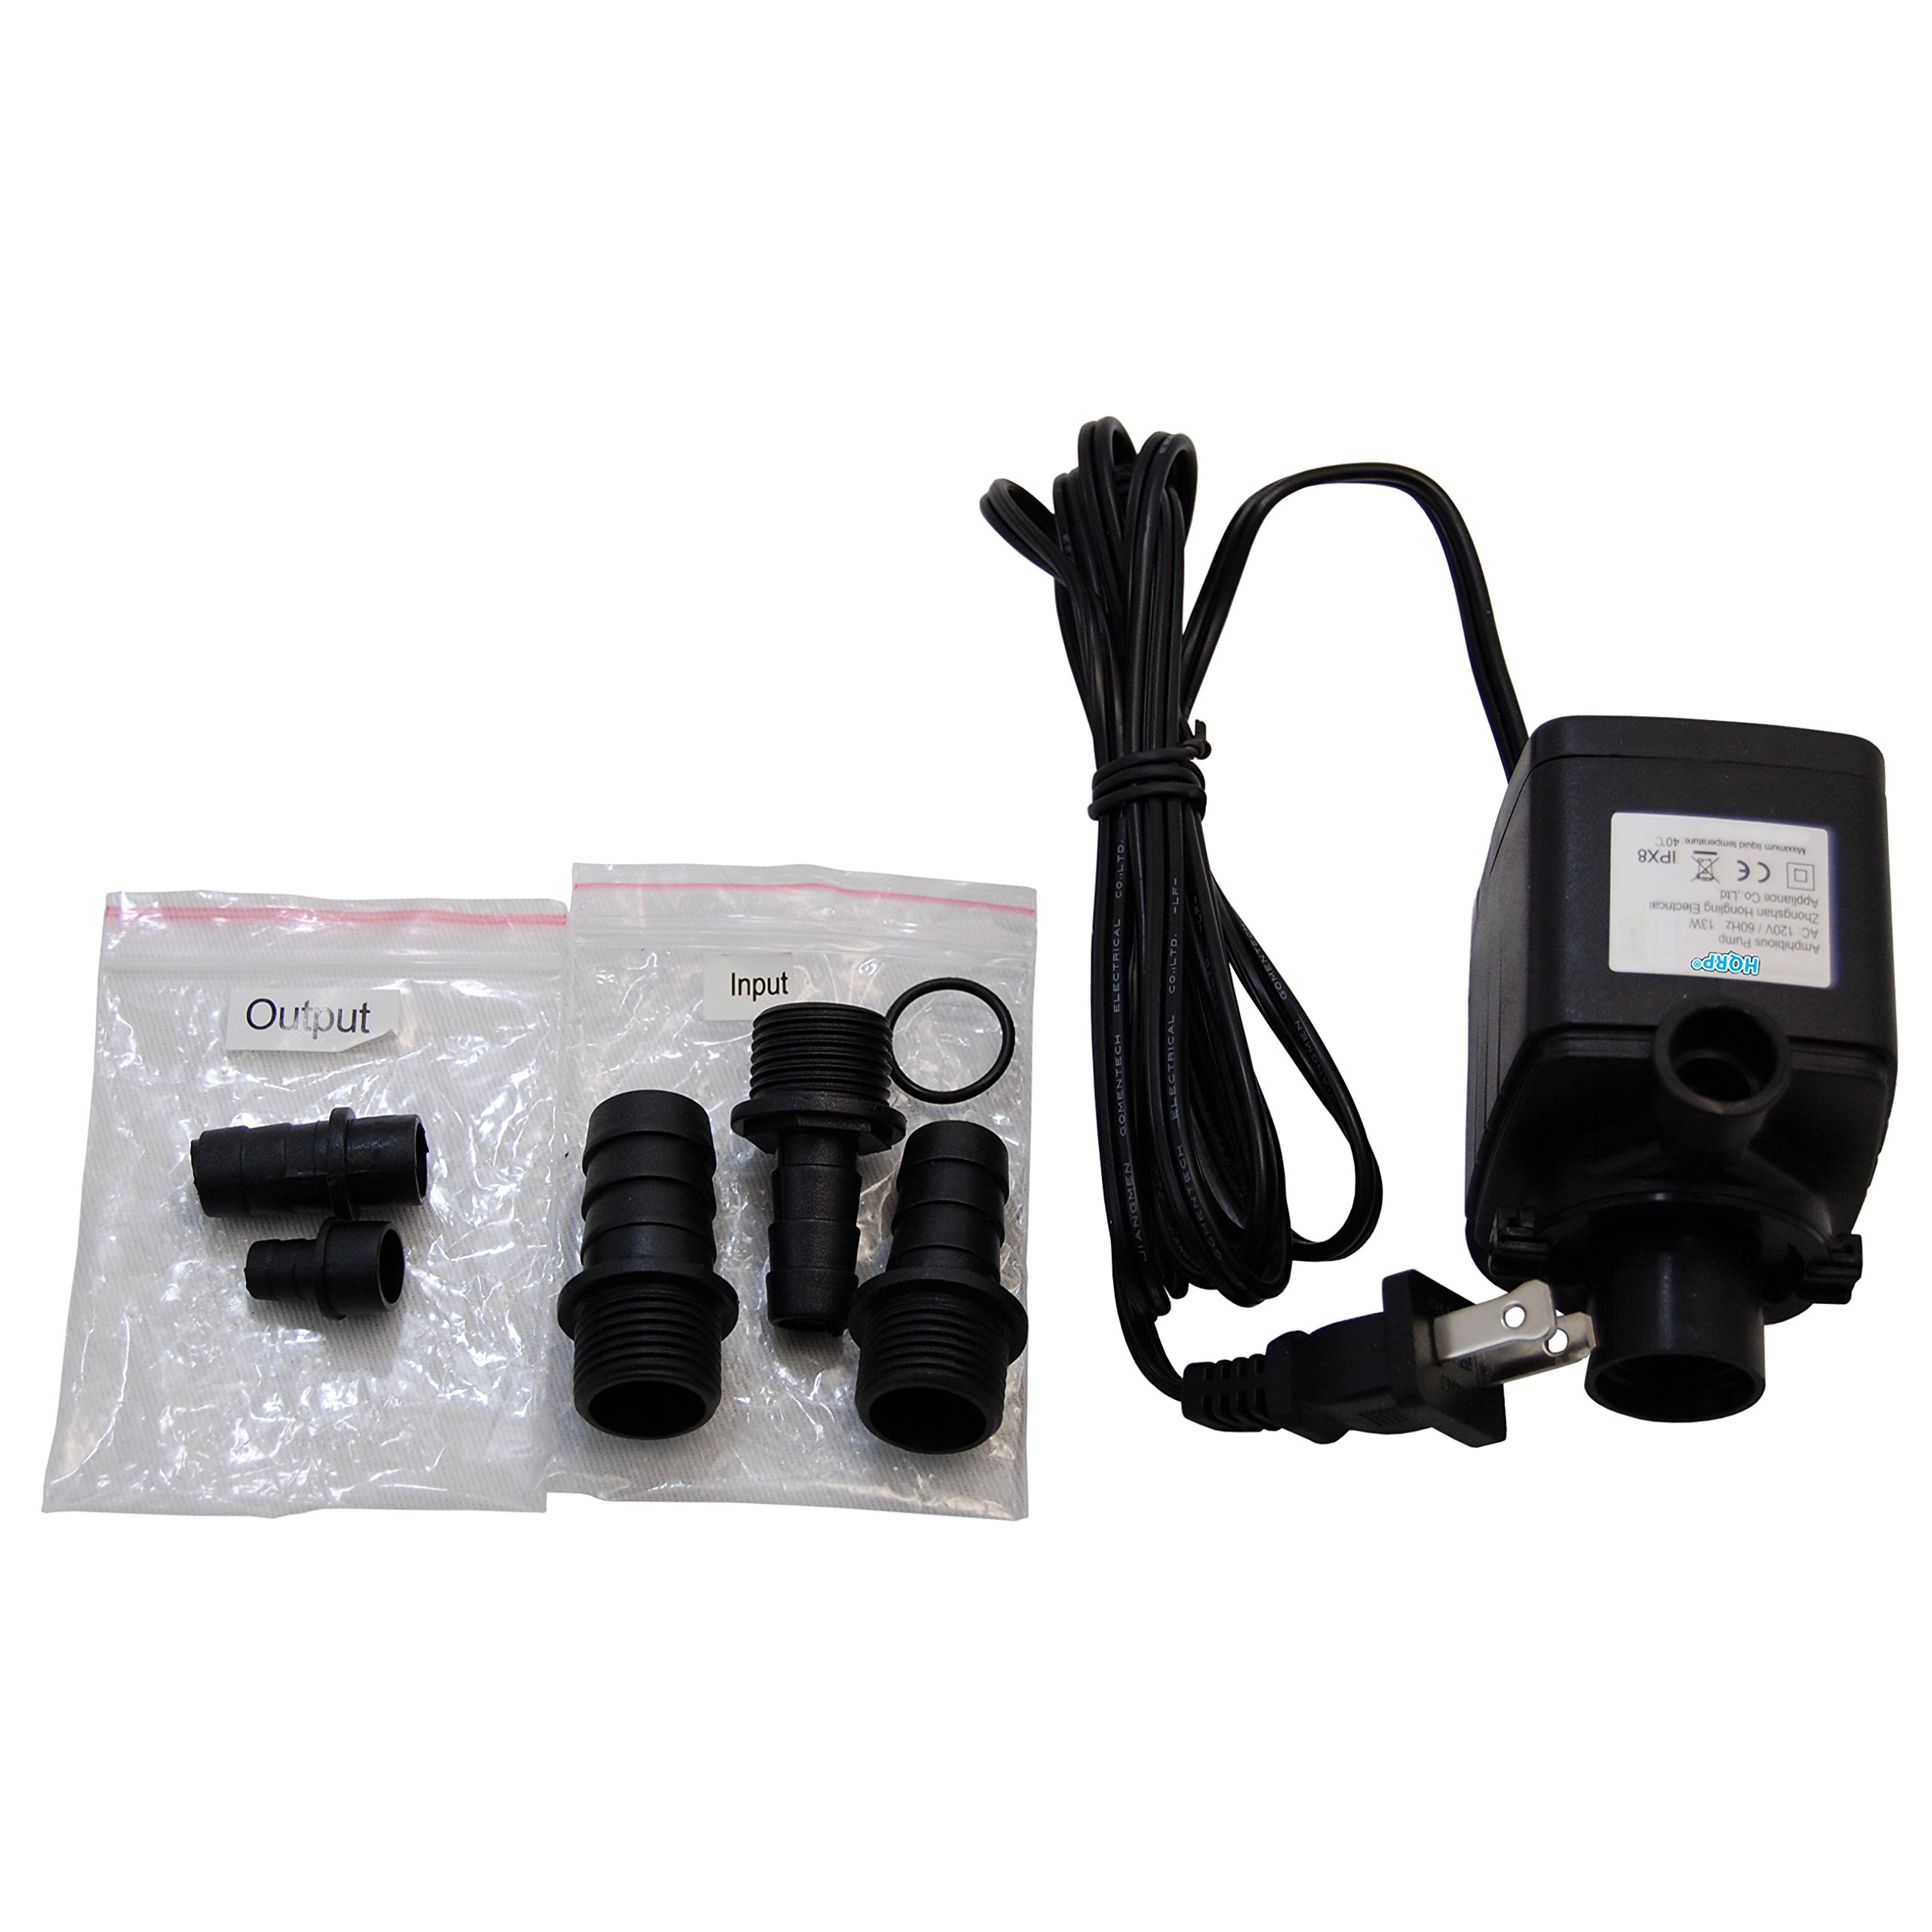 HQRP 800L/h 215GPH 13W Submersible Water Pump for Indoor Garden Hydroponic Plant Growing Systems plus HQRP UV Meter